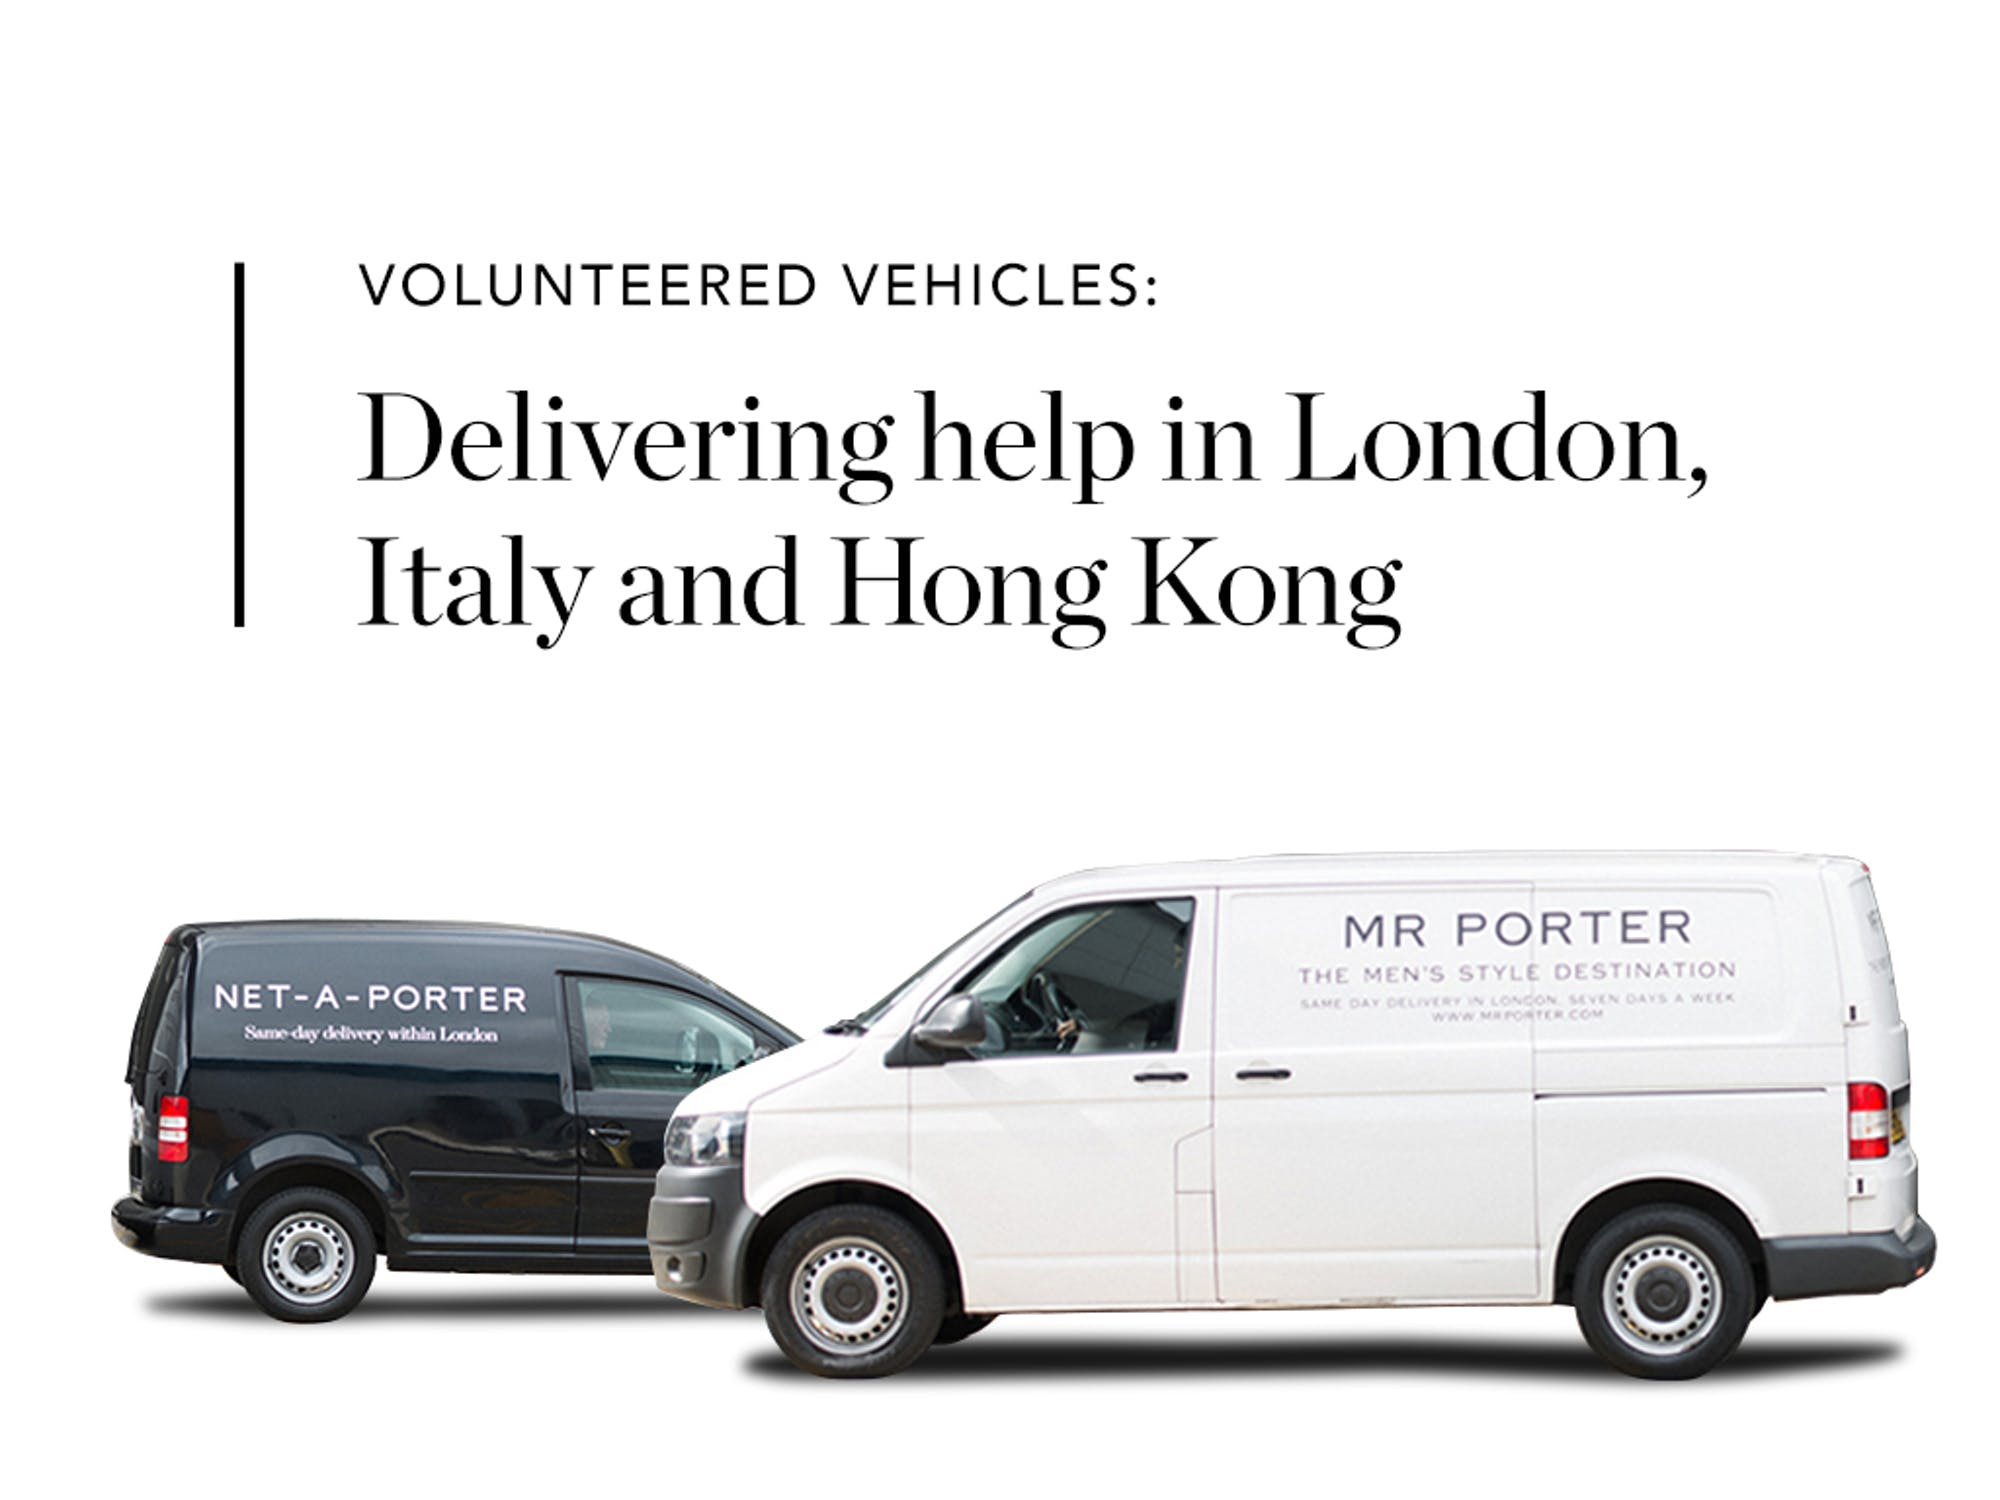 Love in the time of Coronavirus  YOOX NET-A-PORTER GROUP extends donation of delivery fleets to support non-profits in the UK, Italy & Hong Kong